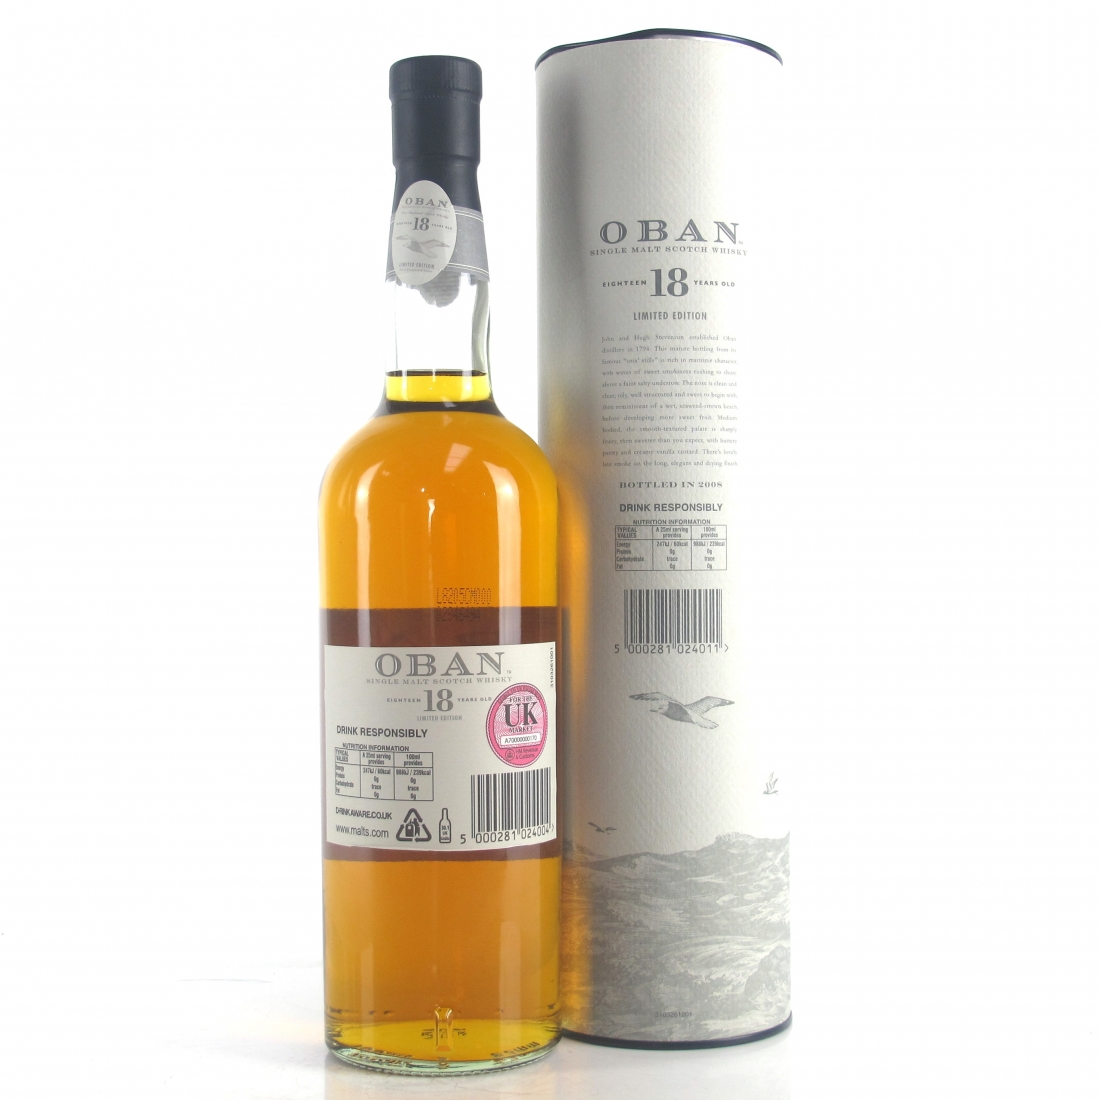 Oban 18 Year Old Limited Edition / Bottle #0003